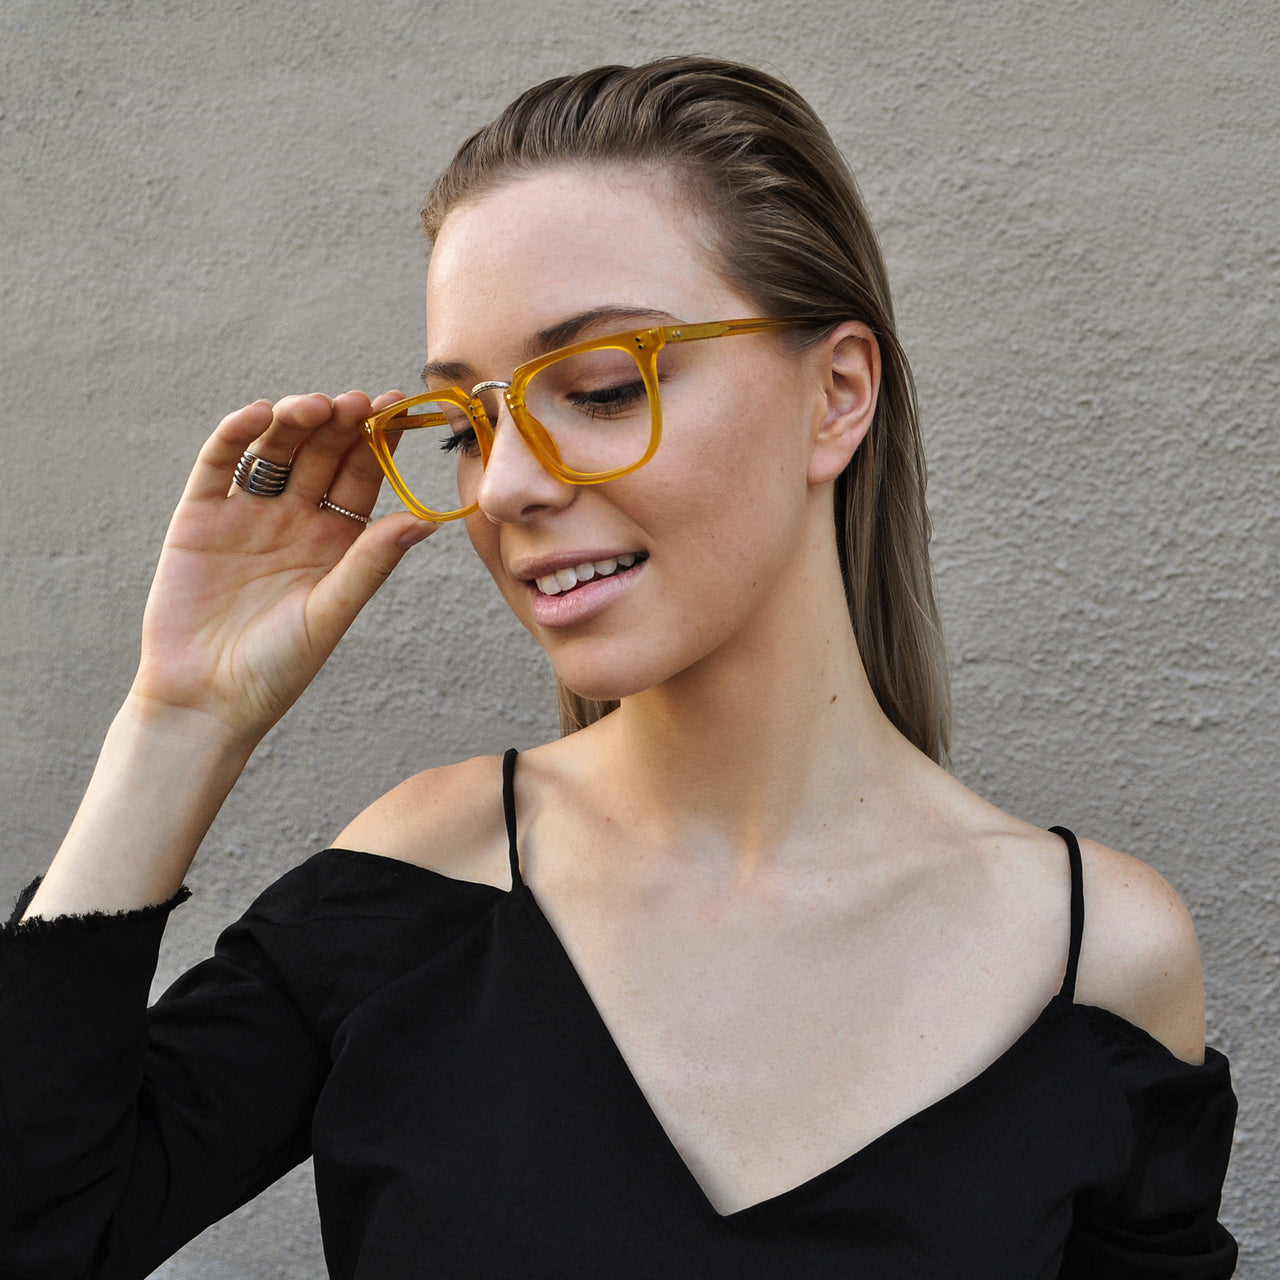 Buy Prescription eyeglasses Online, Optometrist in Melbourne. Shop online, free express delivery nationwide. Prescription sunglasses as well!